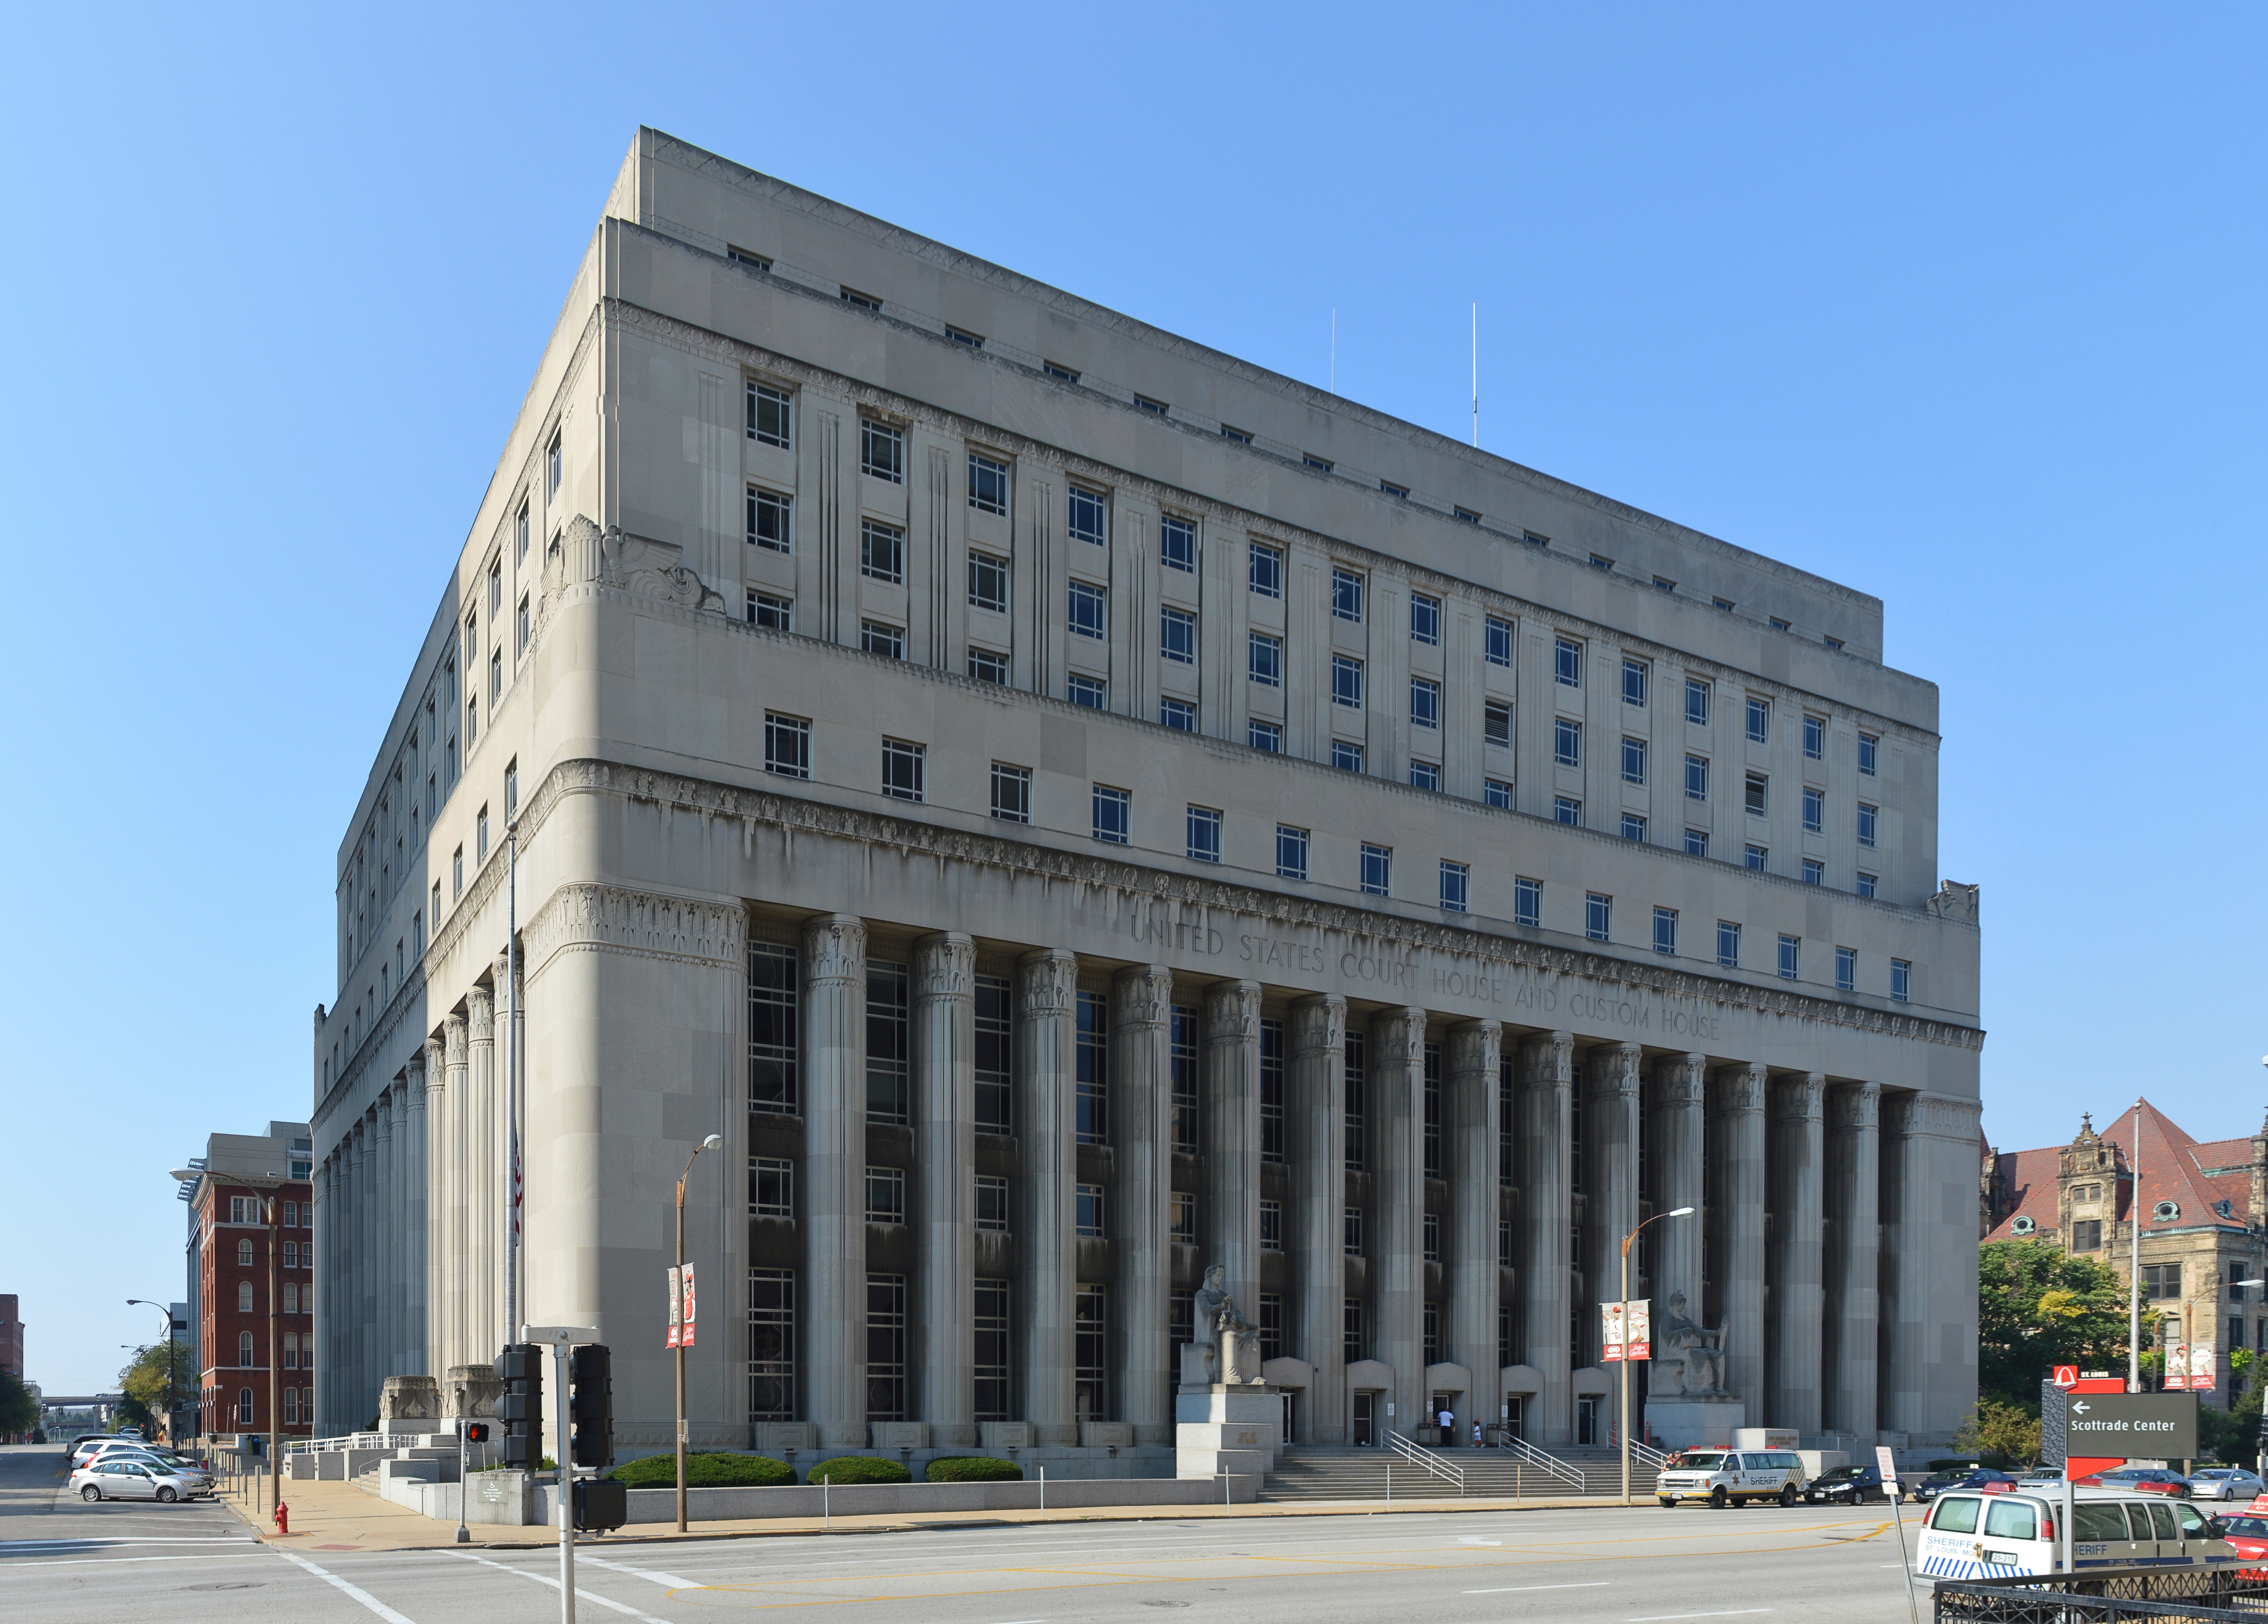 Carnahan Courthouse - Wikipedia